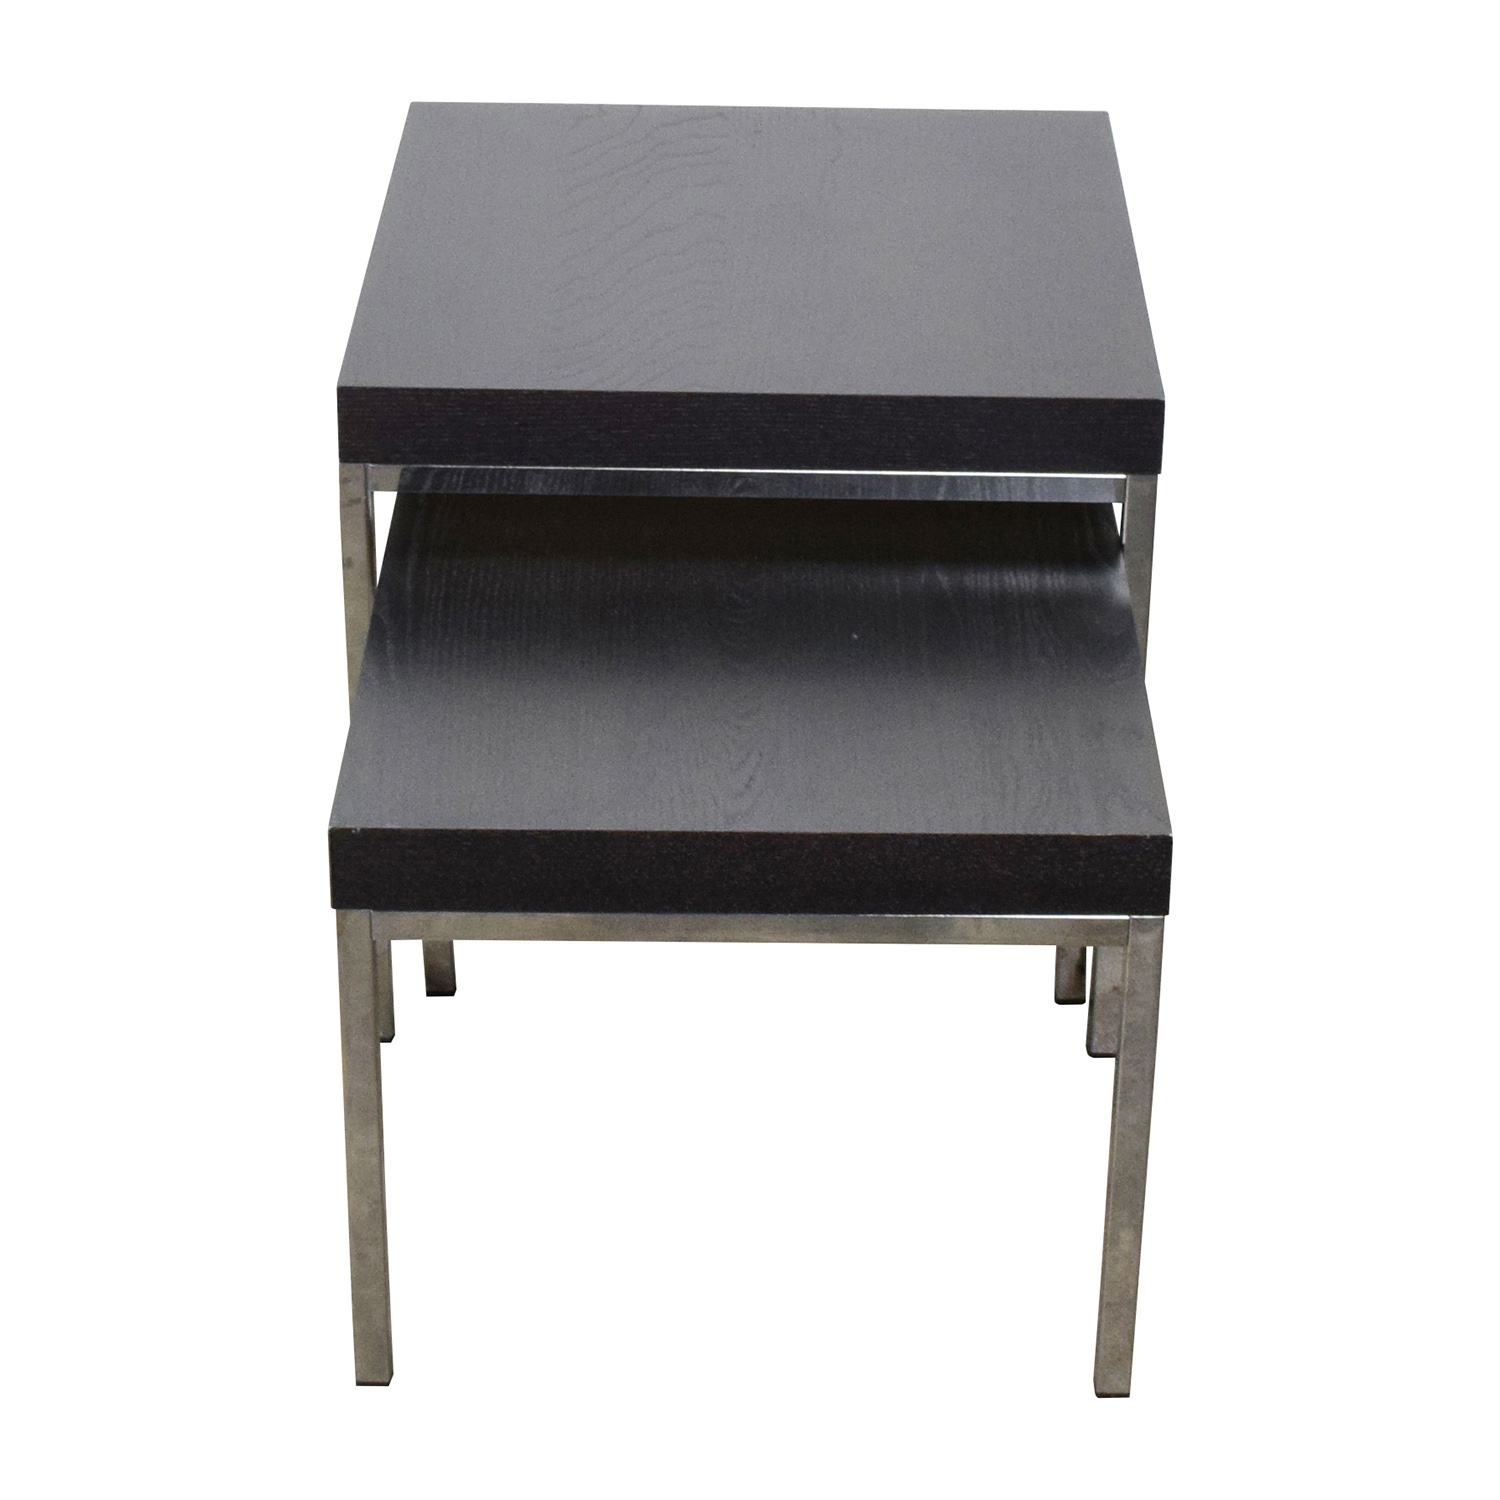 IKEA IKEA Klubbo Black and Chrome Nesting Tables second hand